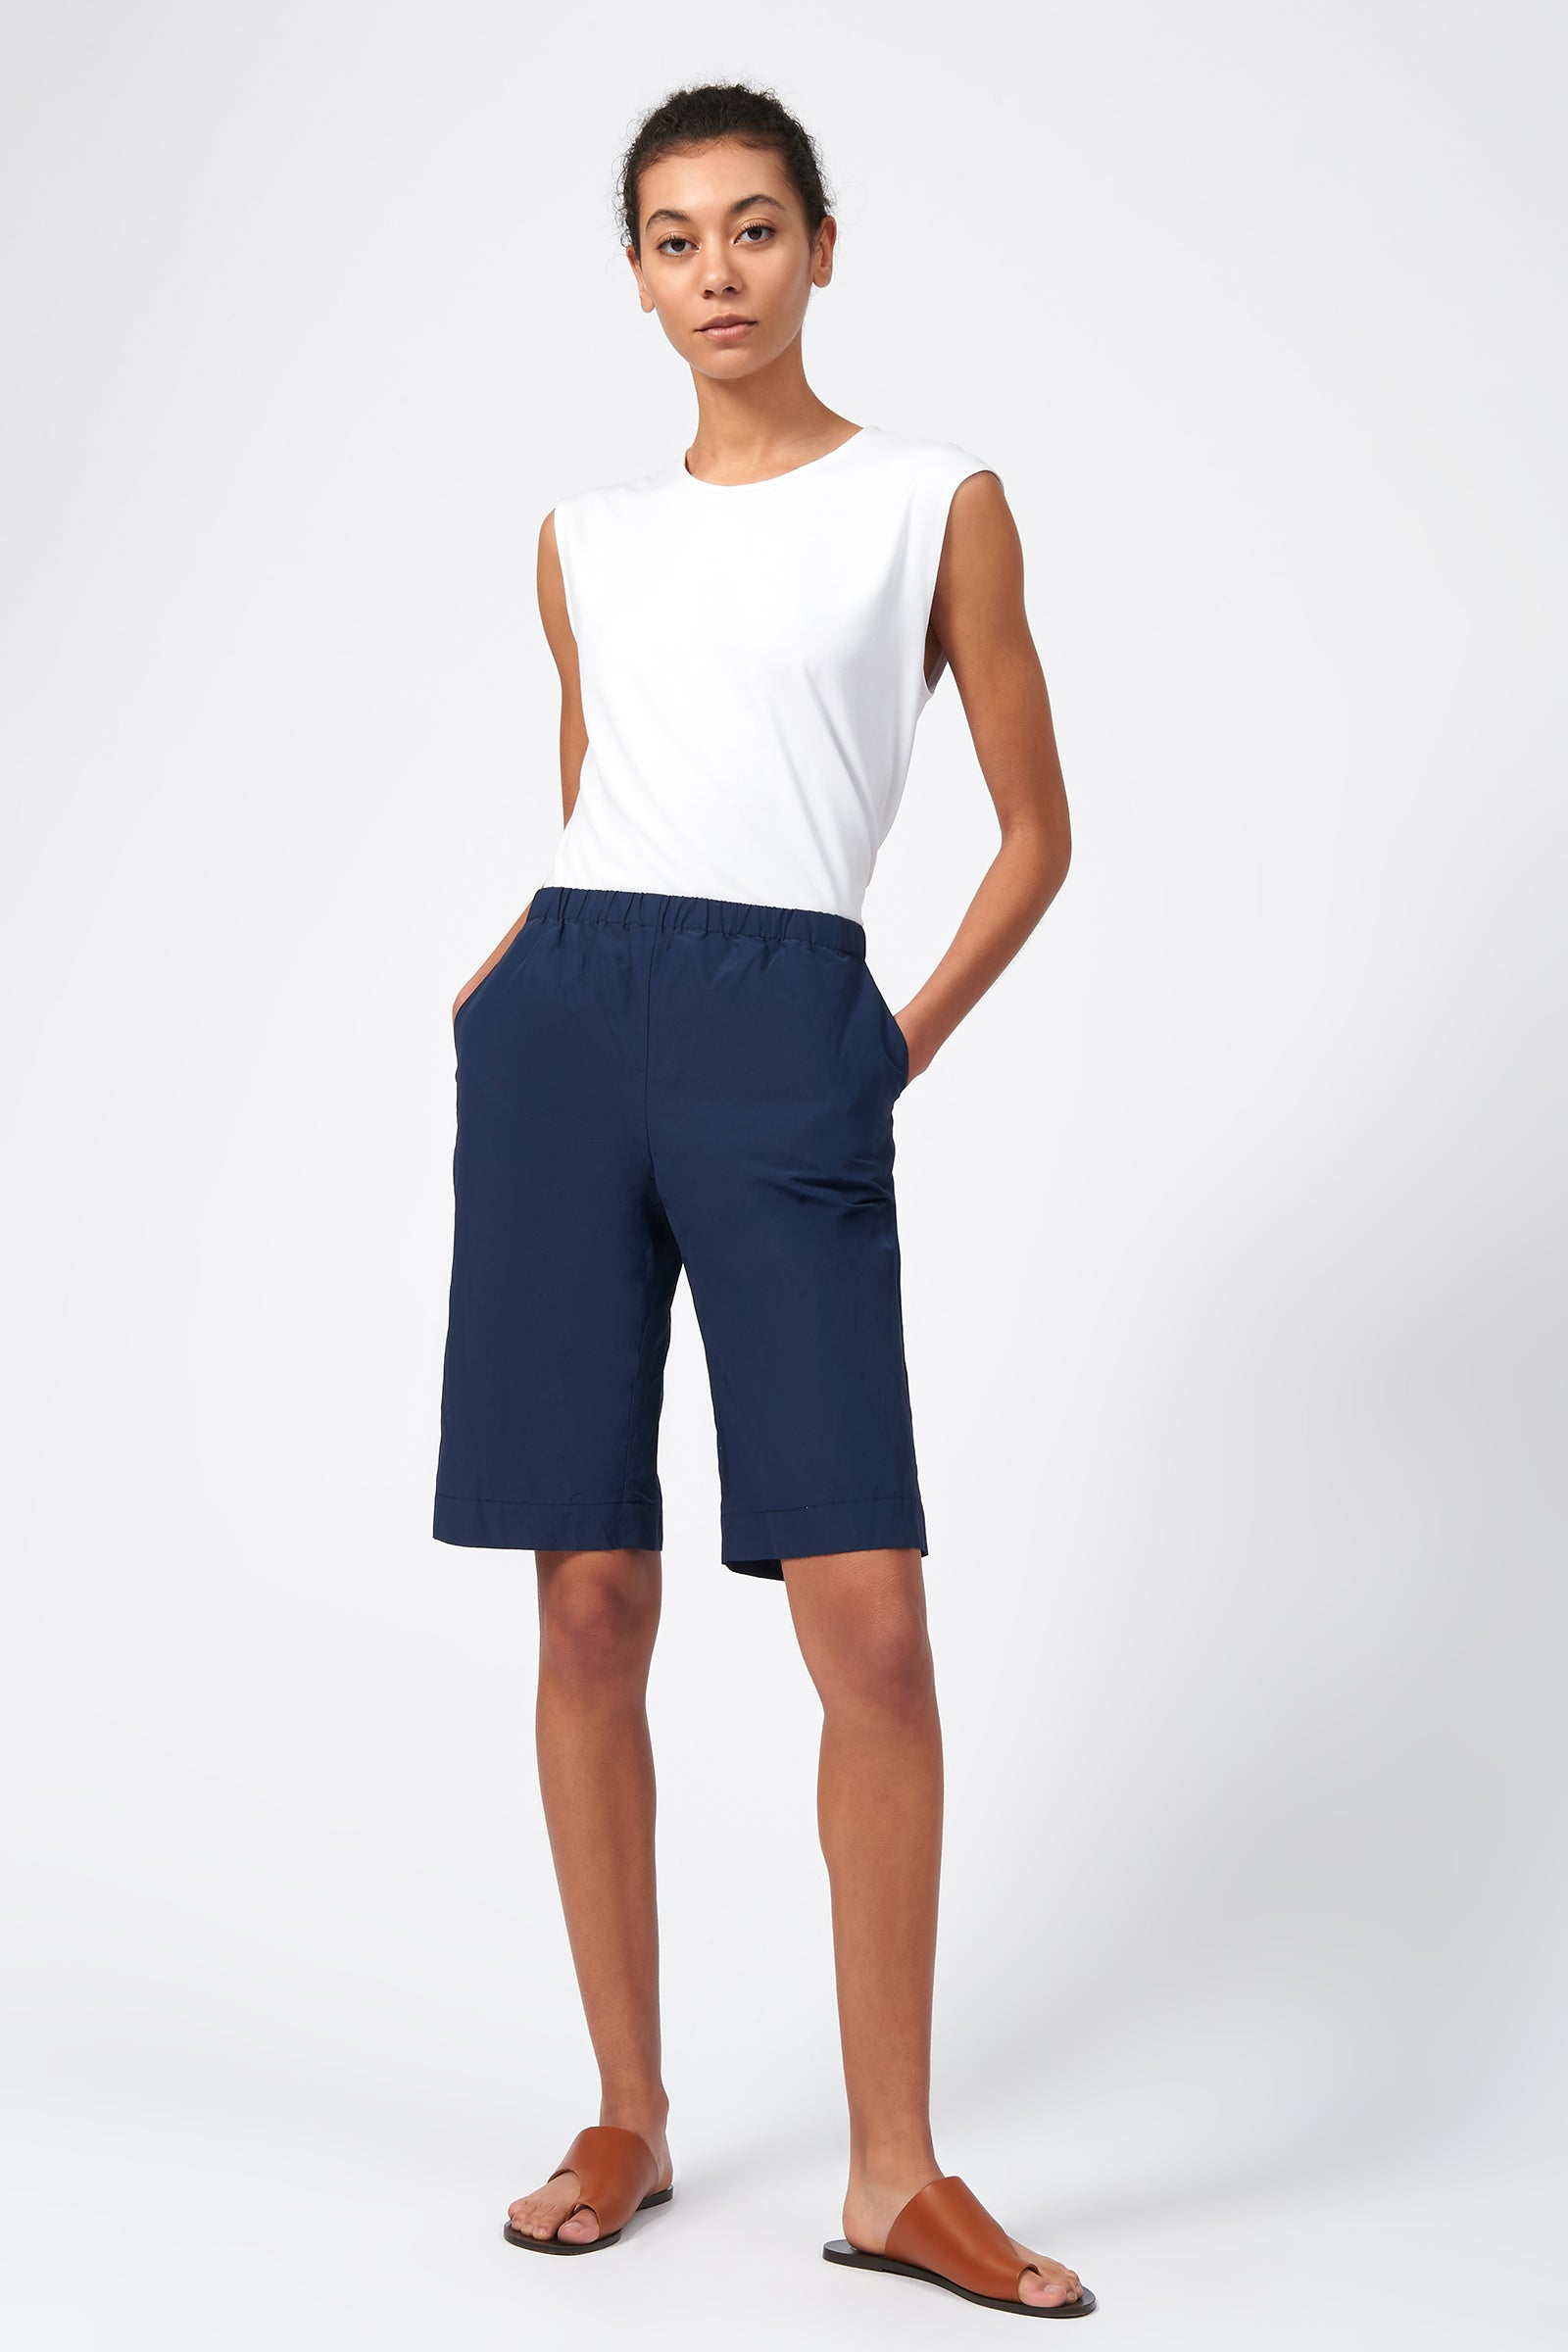 Kal Rieman Cotton Nylon Bermuda in Navy on Model Front View